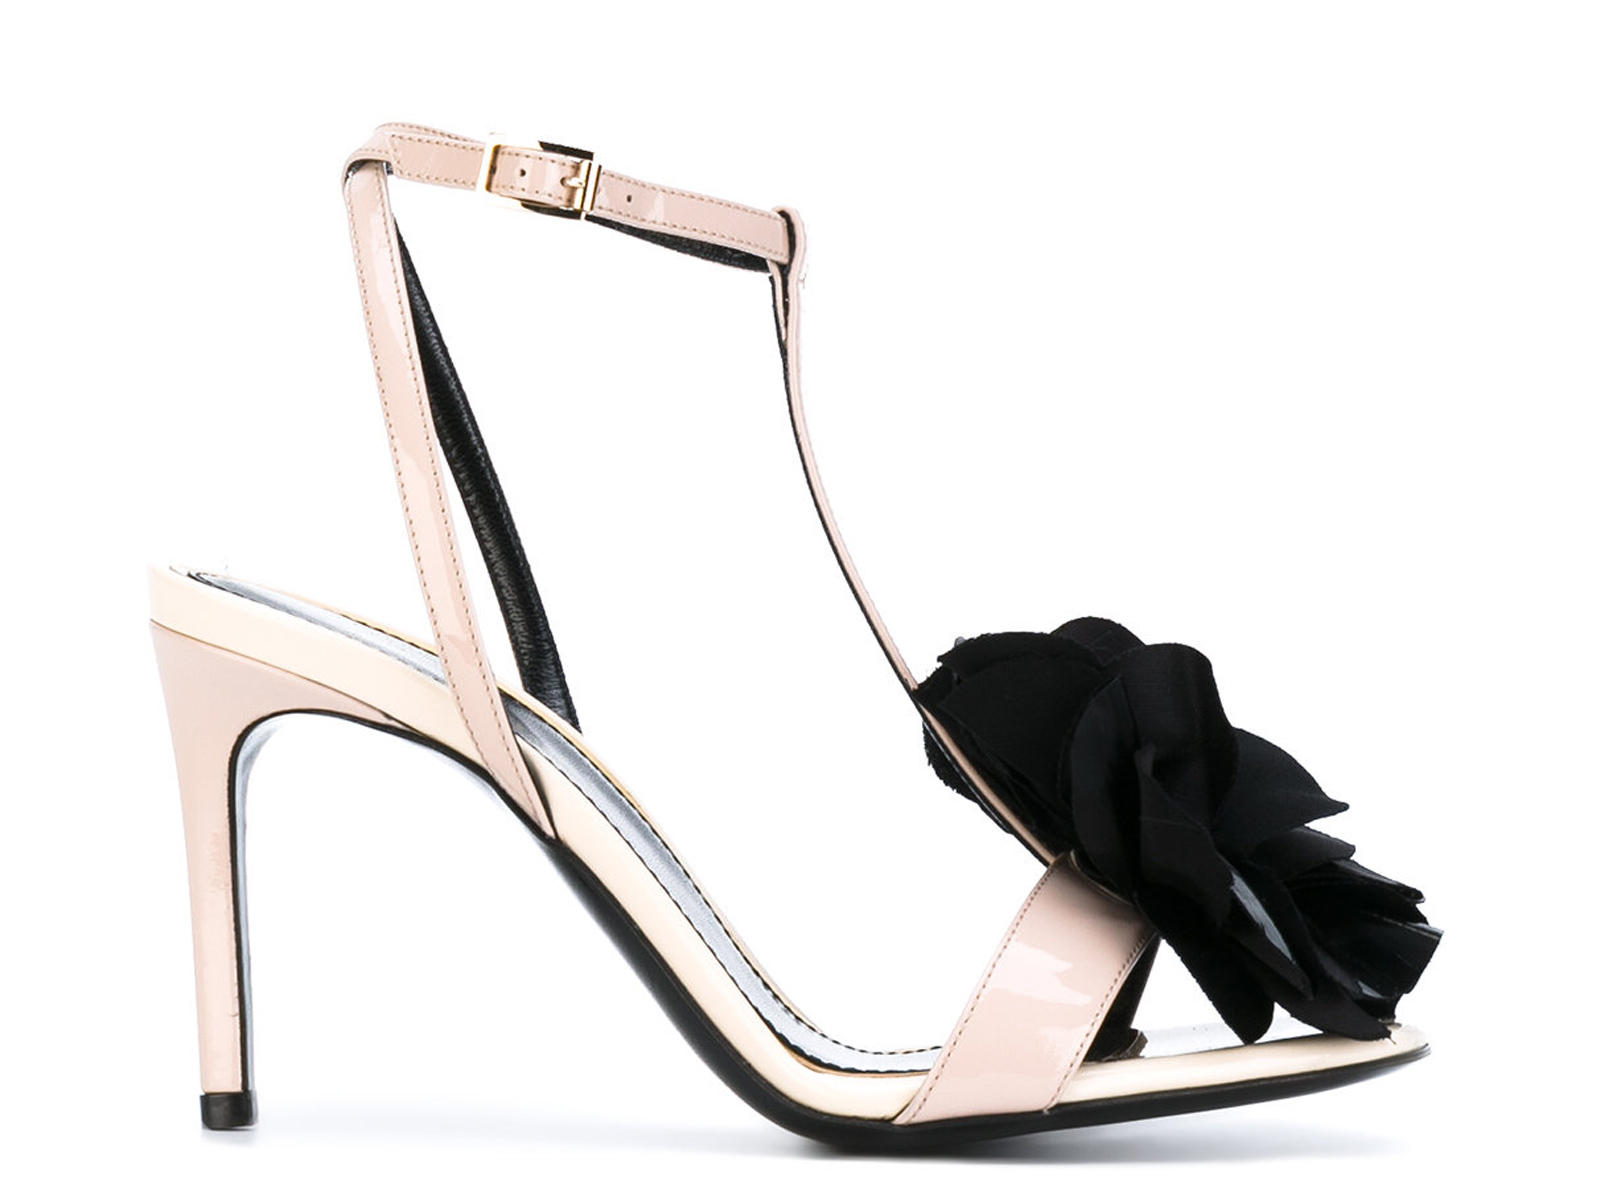 Lanvin-Women-039-s-high-stiletto-heels-sandals-in-Powder-Patent-Leather-ankle-straps thumbnail 6